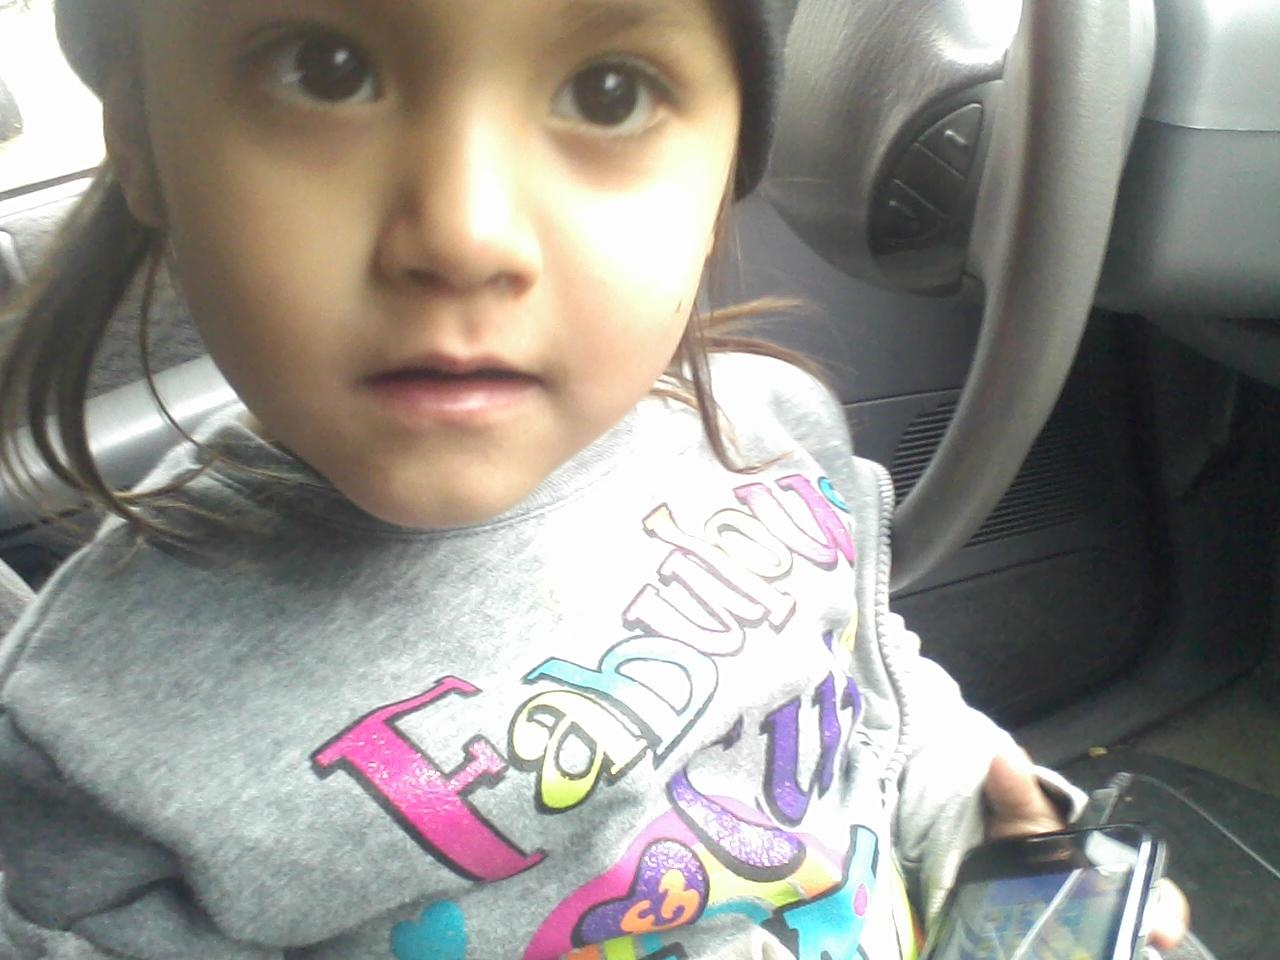 Isabel Perez, 3, will be moved from intensive care to rehabilitative care on Feb. 22, 2013, after being shot in the head by her mother on Feb. 6, 2013. (Photo: Perez family)